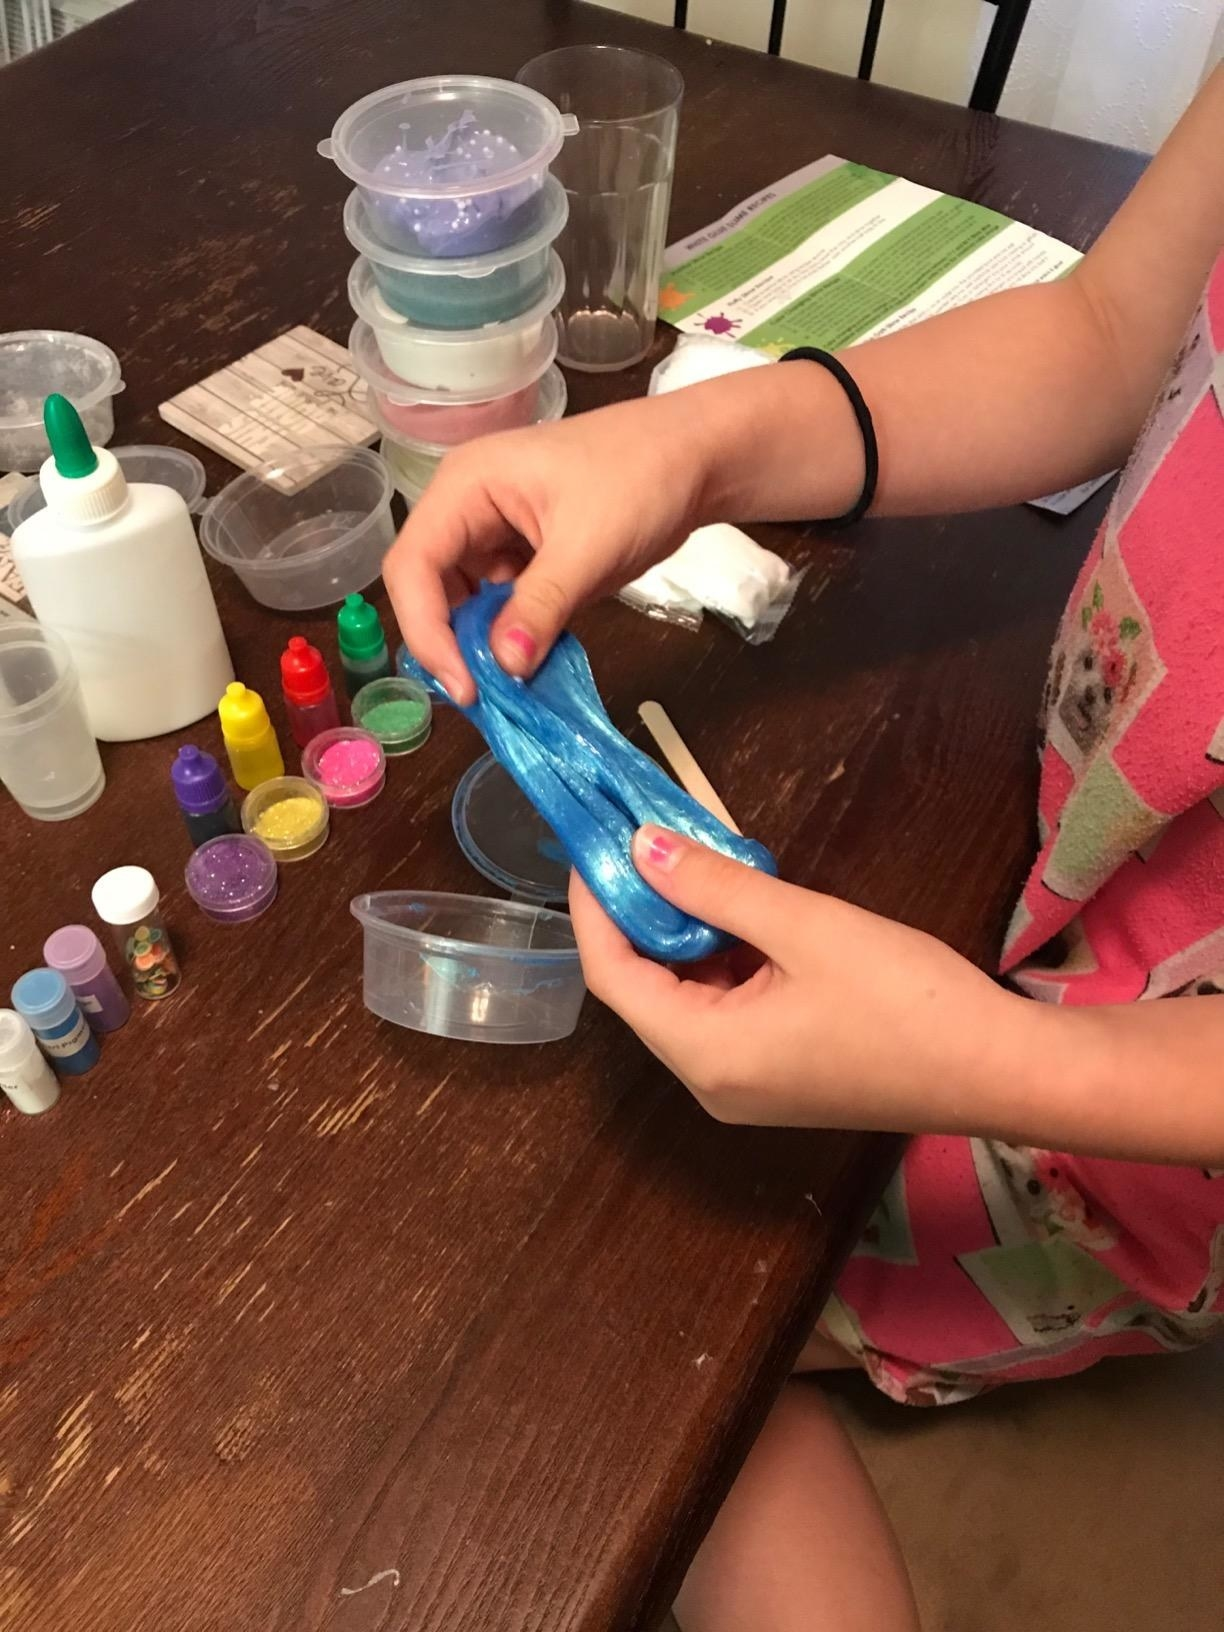 A reviewer's kid stretching blue slime